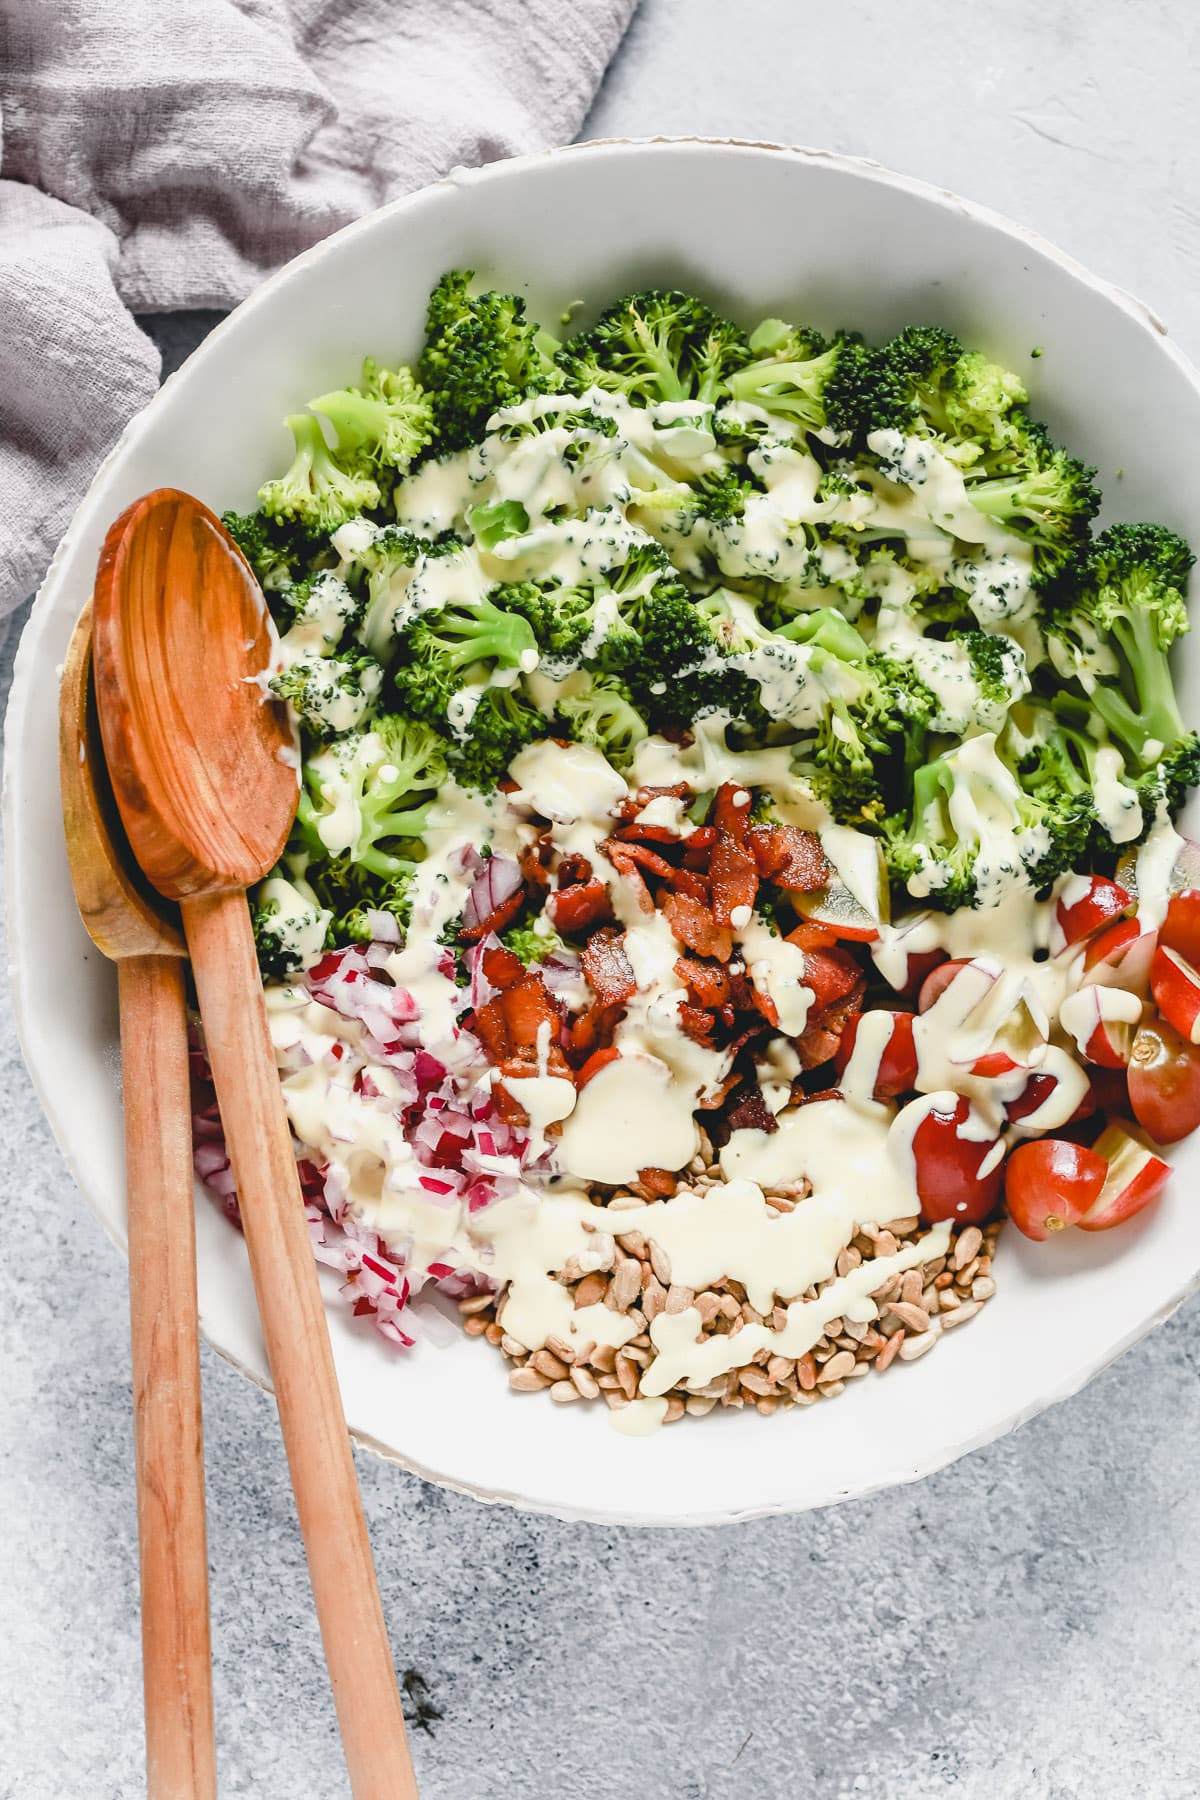 salad in white bowl with broccoli, tomatoes, bacon, onion, sesame seeds and dressing